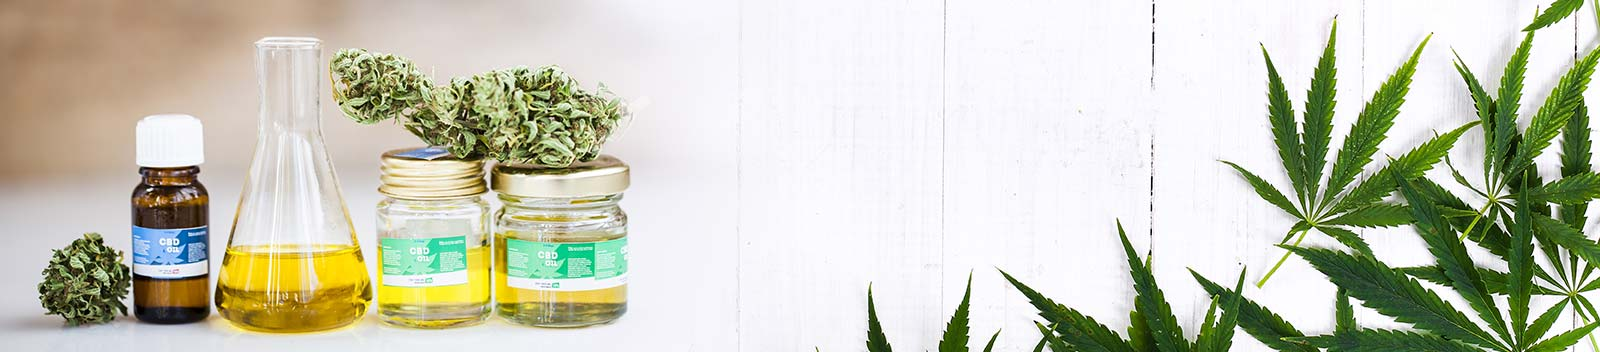 Full Range of Human and Pet-Friendly CBD Oils & Tinctures In-Store Now